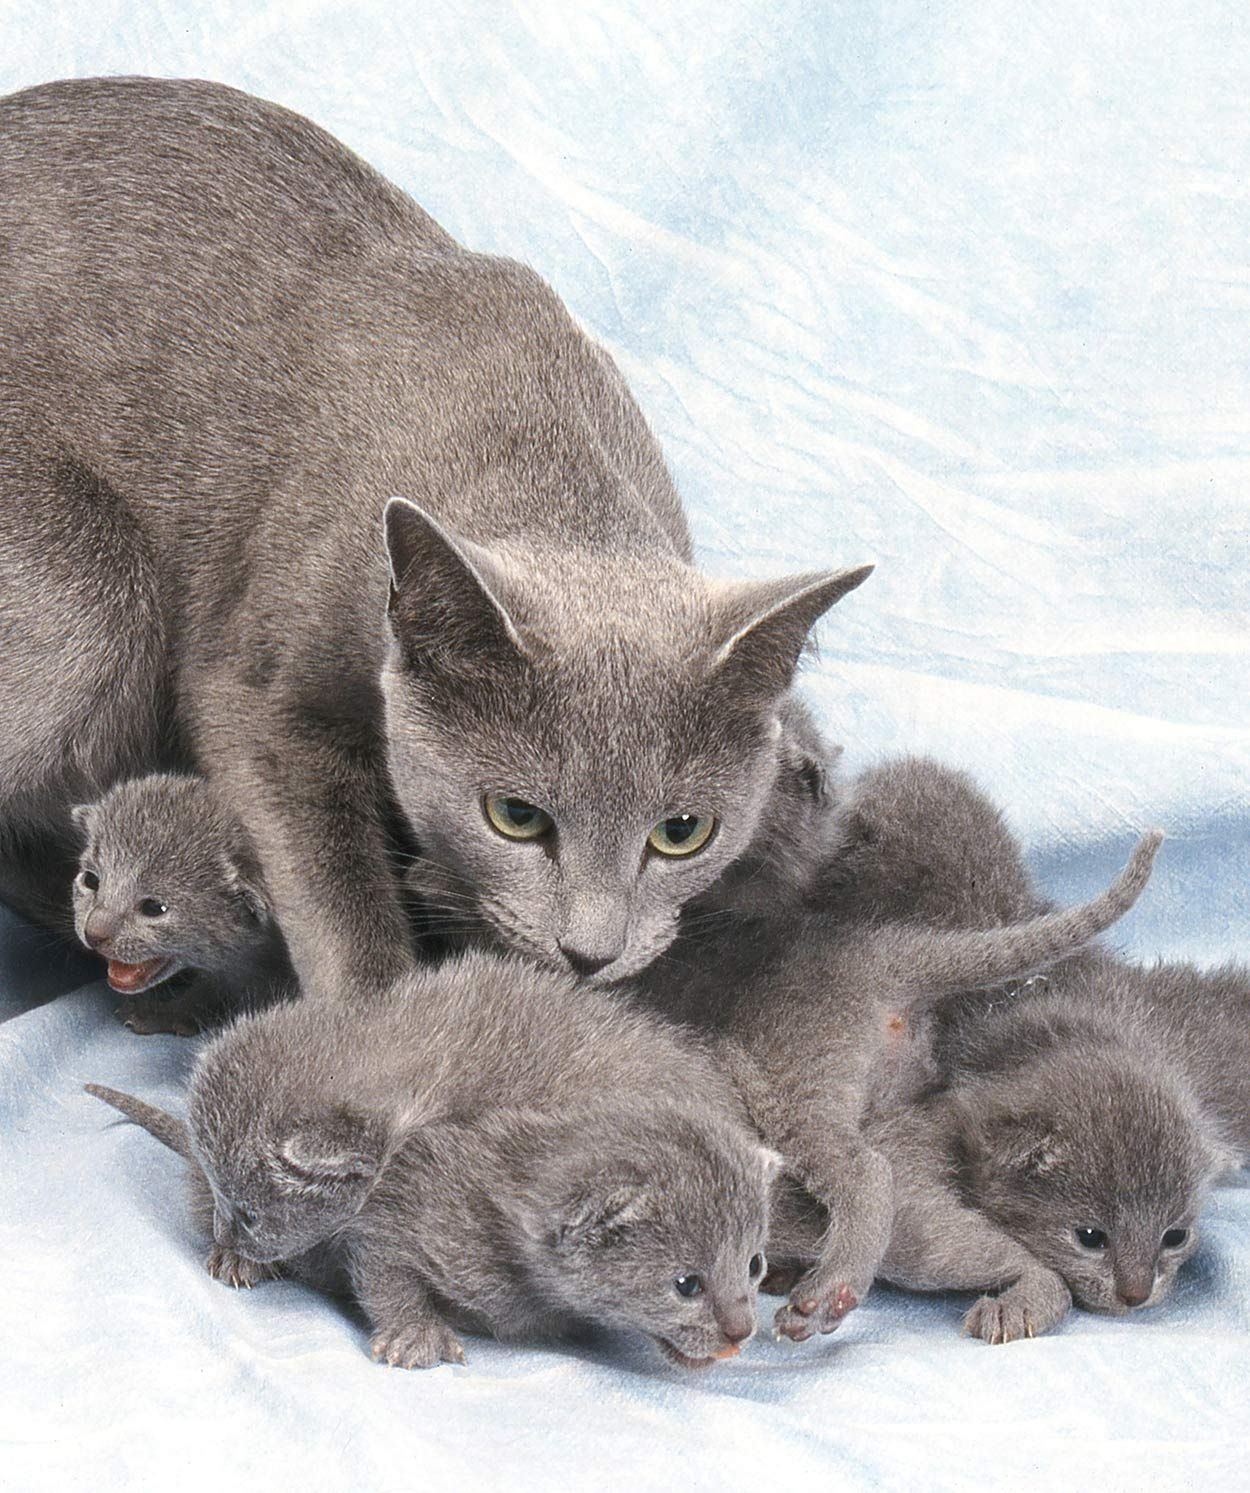 Russian Blue Kittens Finding A Cat And Your First Days Together